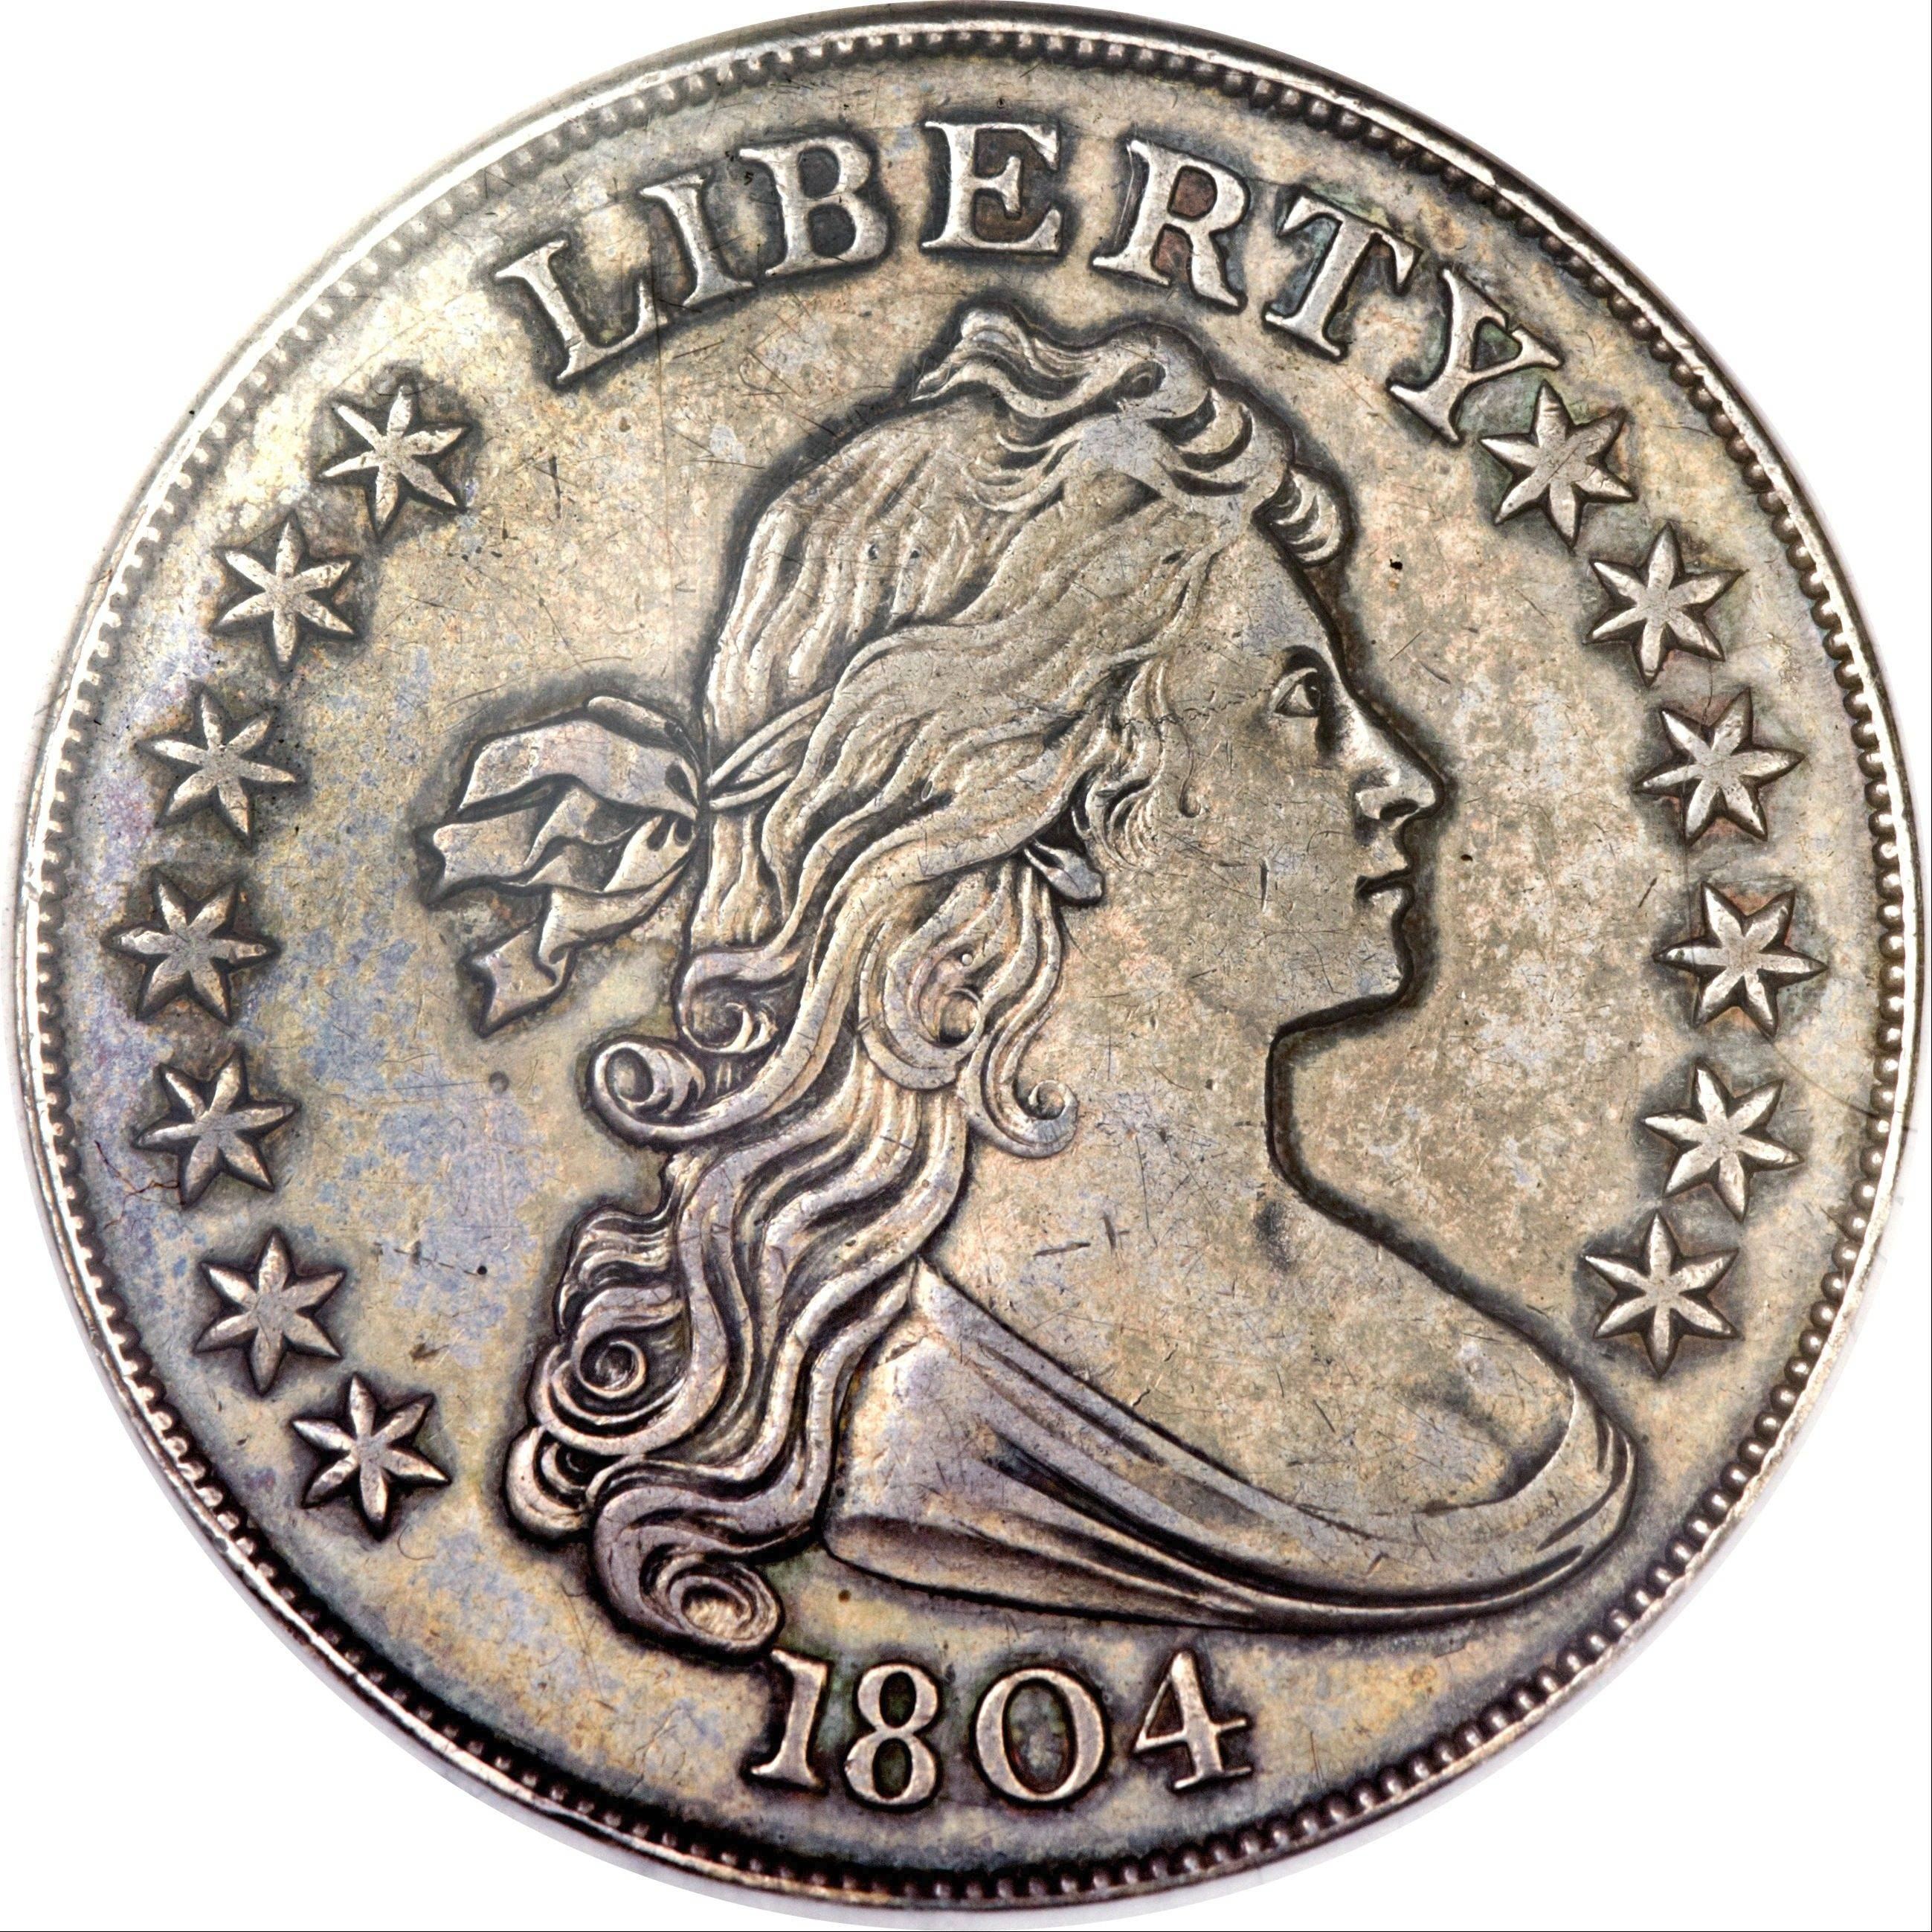 This U.S. silver dollar sold Thursday night for $3,877,500.